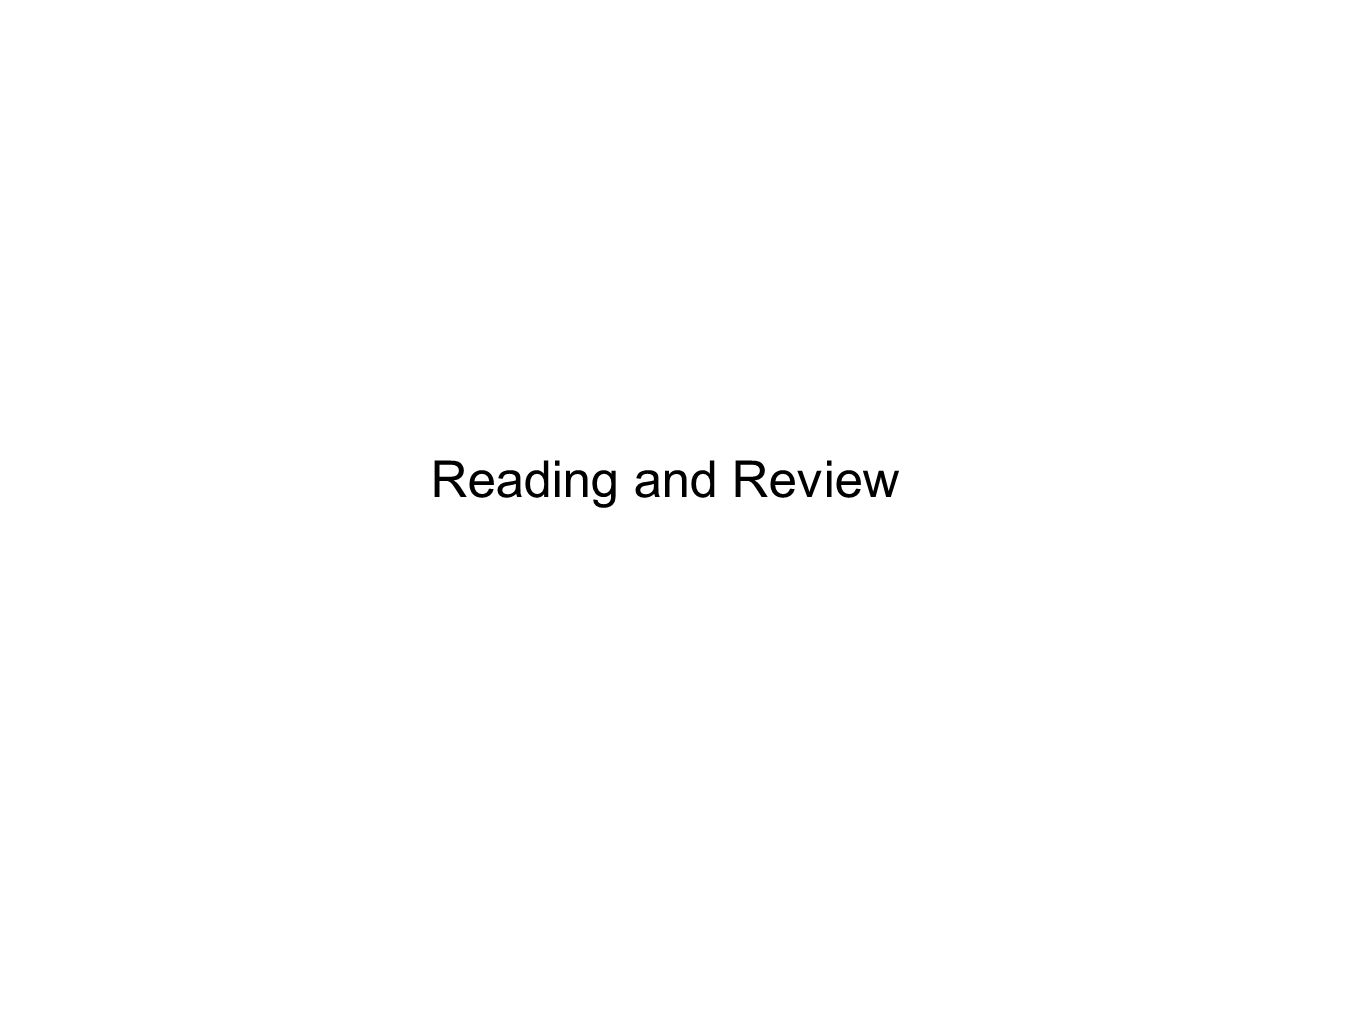 Reading and Review